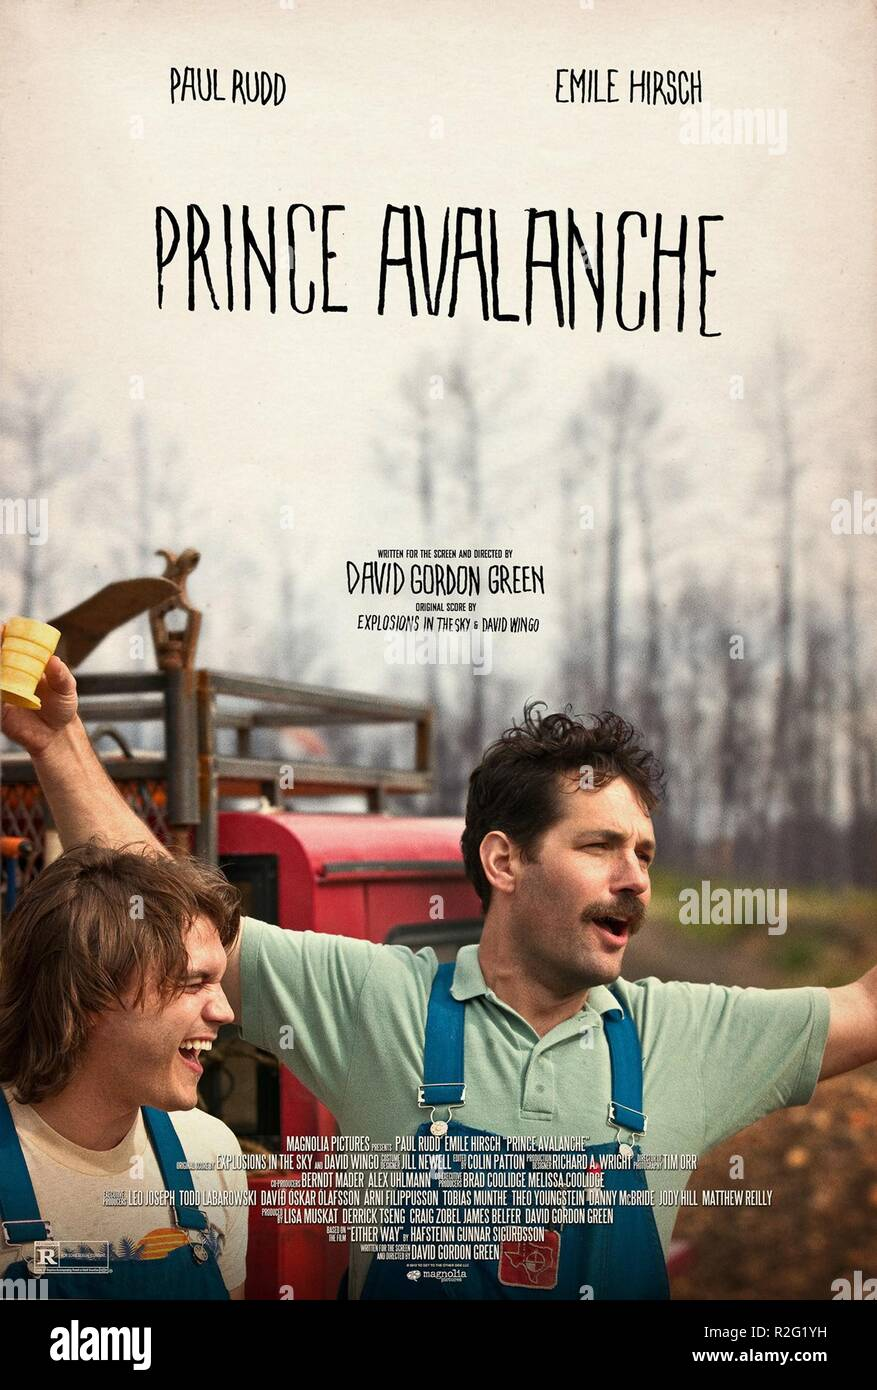 Prince Avalanche Year : 2013 USA Director : David Gordon Green Emile Hirsch, Paul Rudd Movie poster (USA) - Stock Image